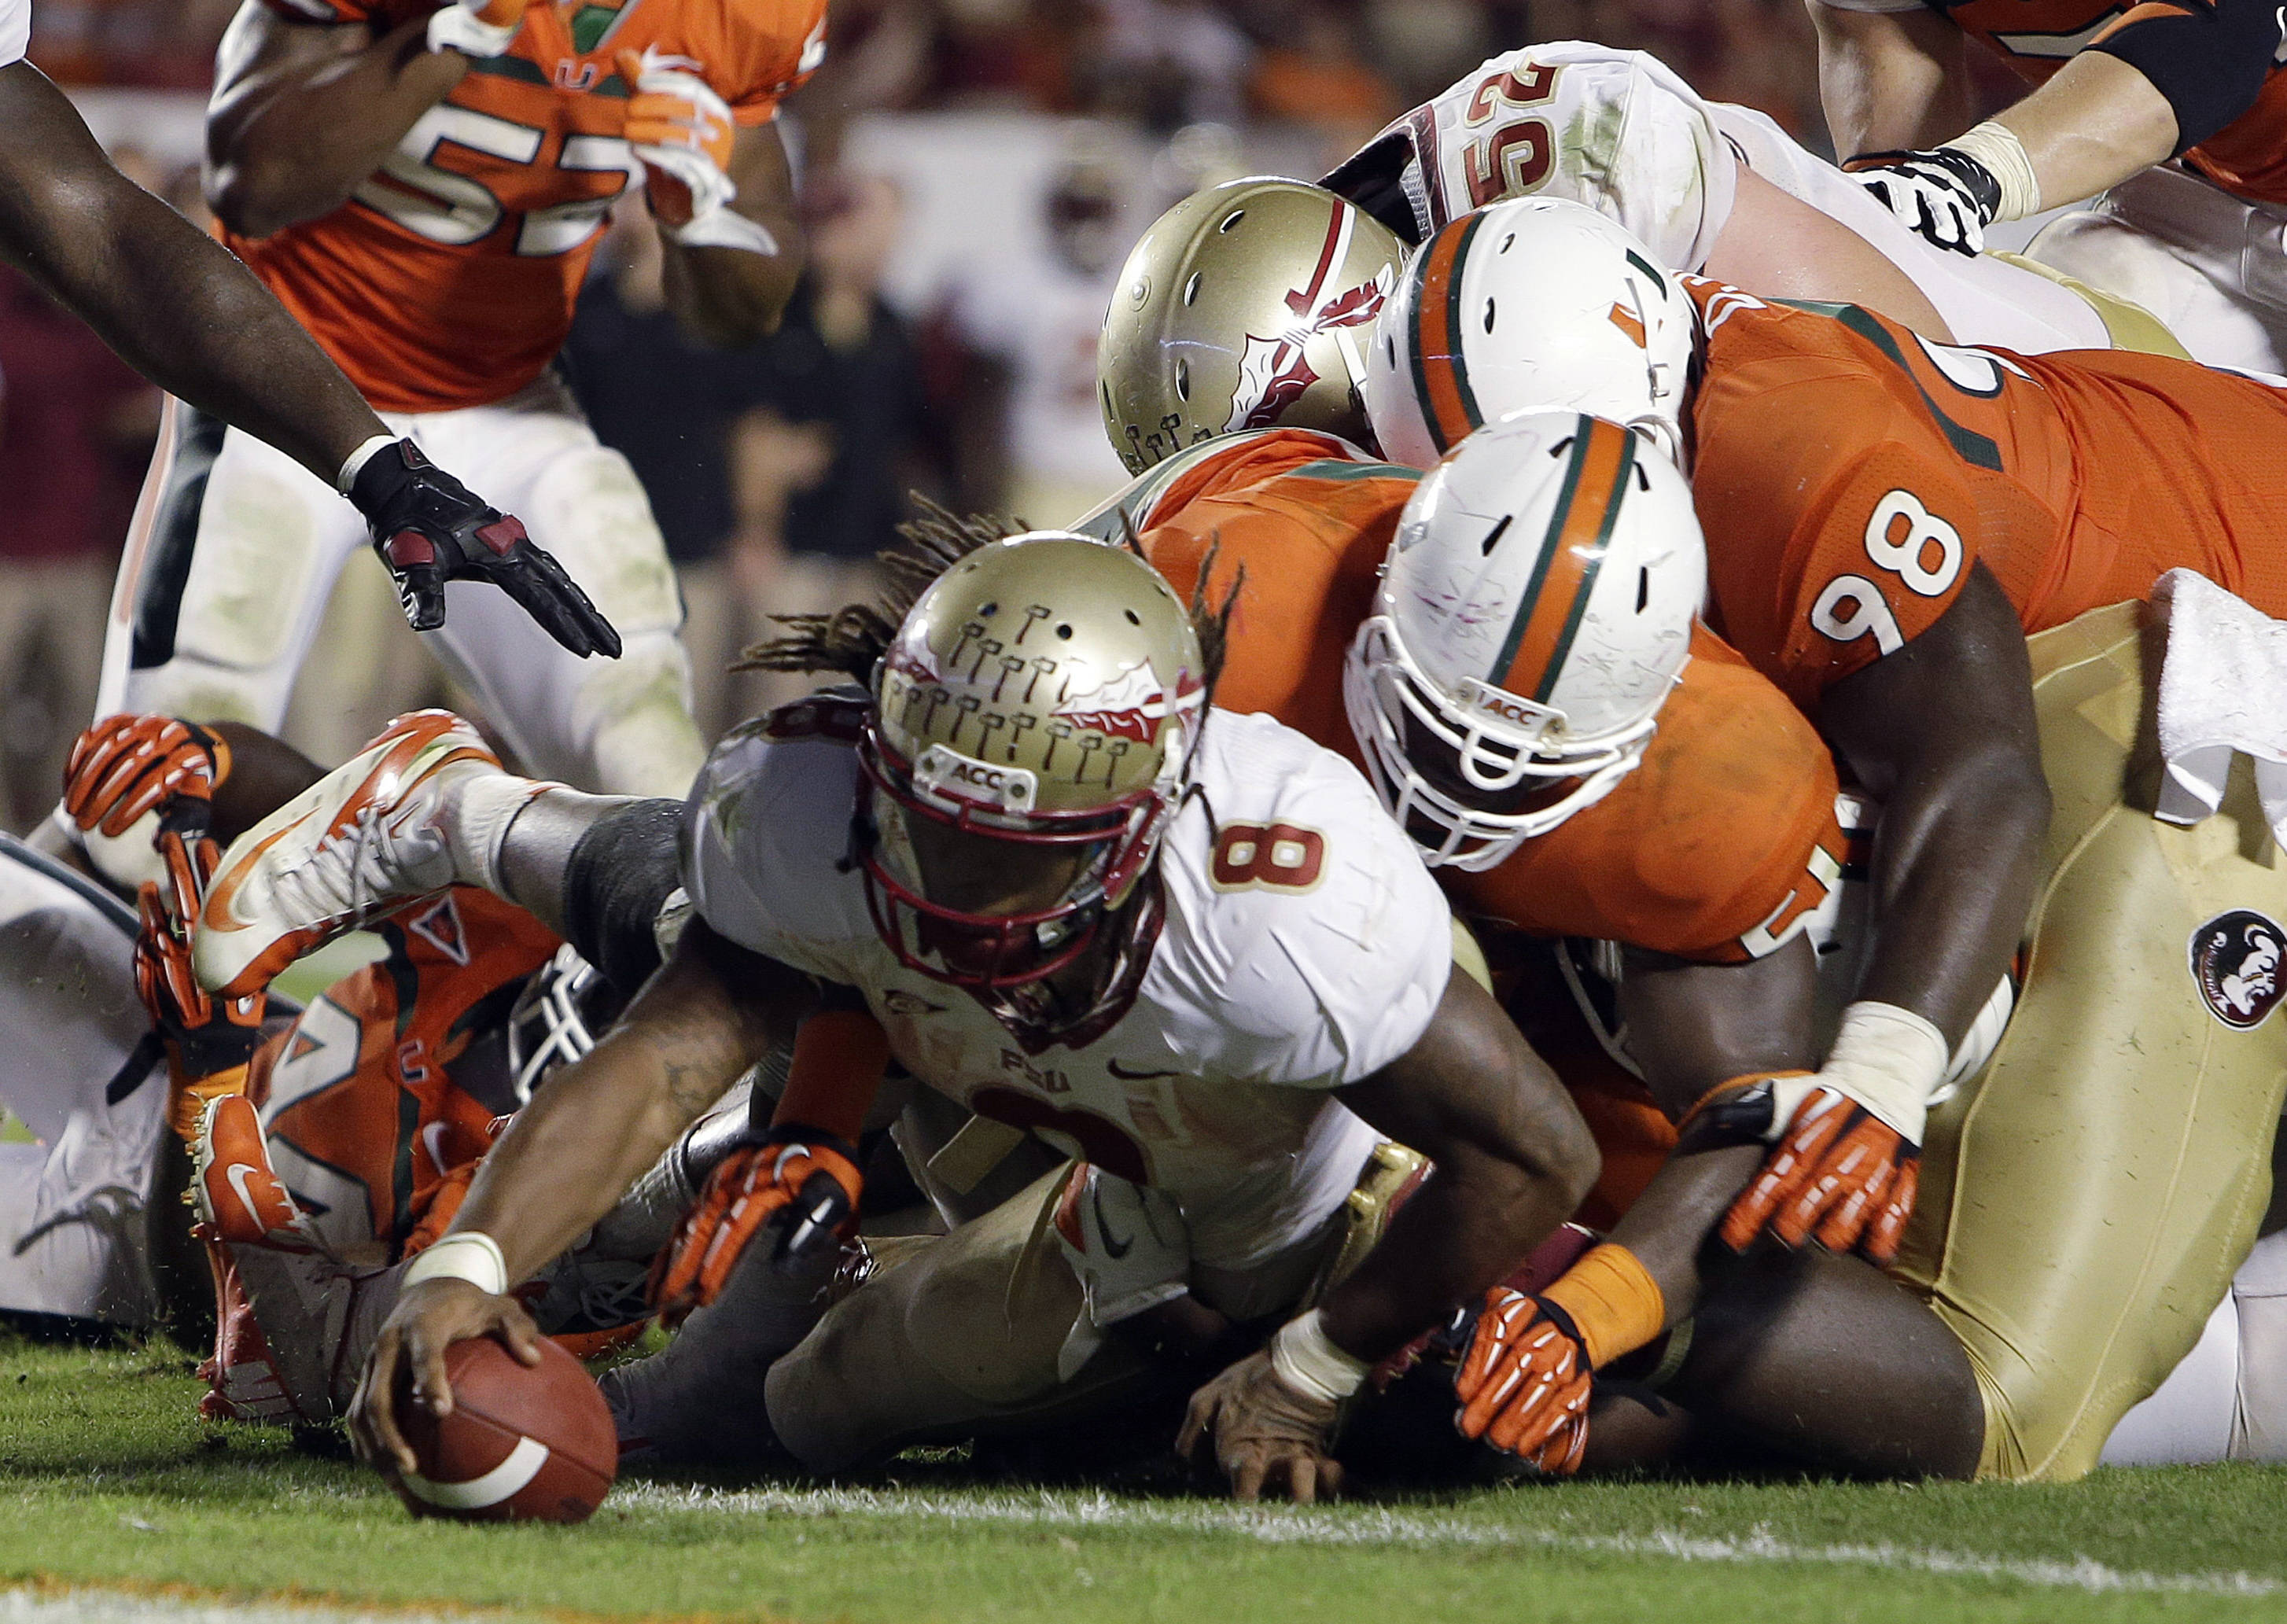 Florida State running back Devonta Freeman (8) scores a touchdown during the second half of an NCAA college football game against Miami, Saturday, Oct. 20, 2012, in Miami. (AP Photo/Lynne Sladky)